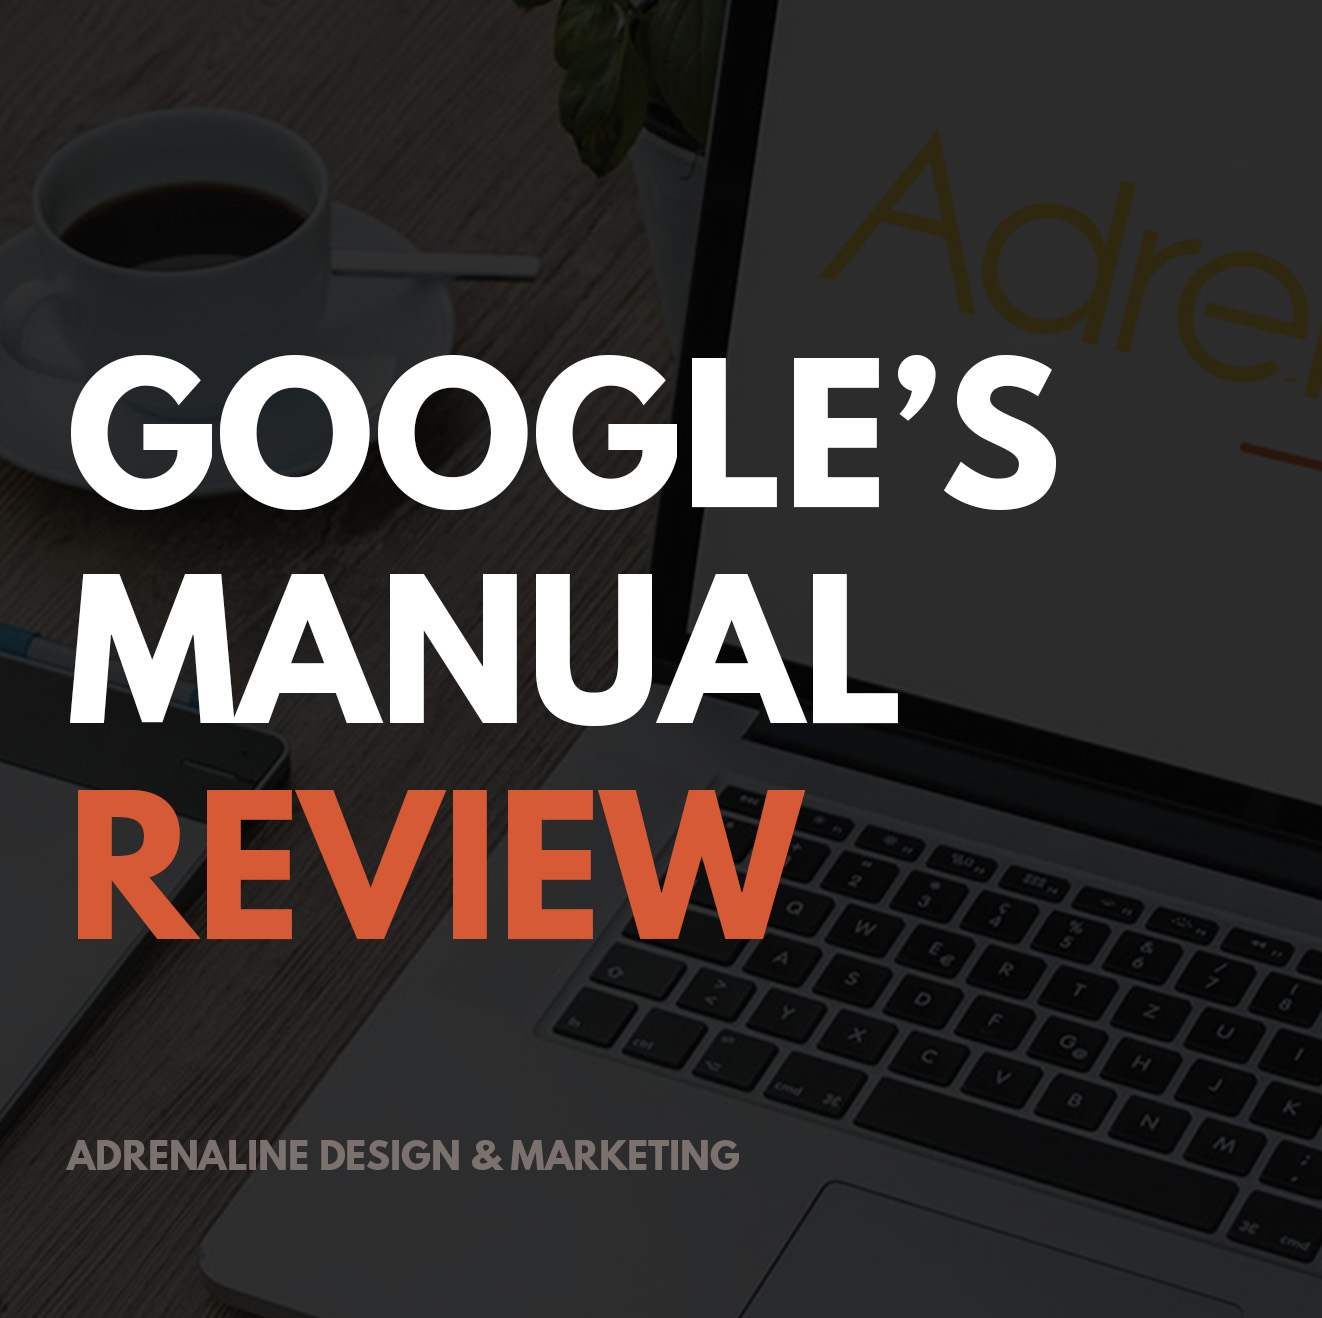 Google's Manual Review – How To Find If Your Site Has Been Reviewed